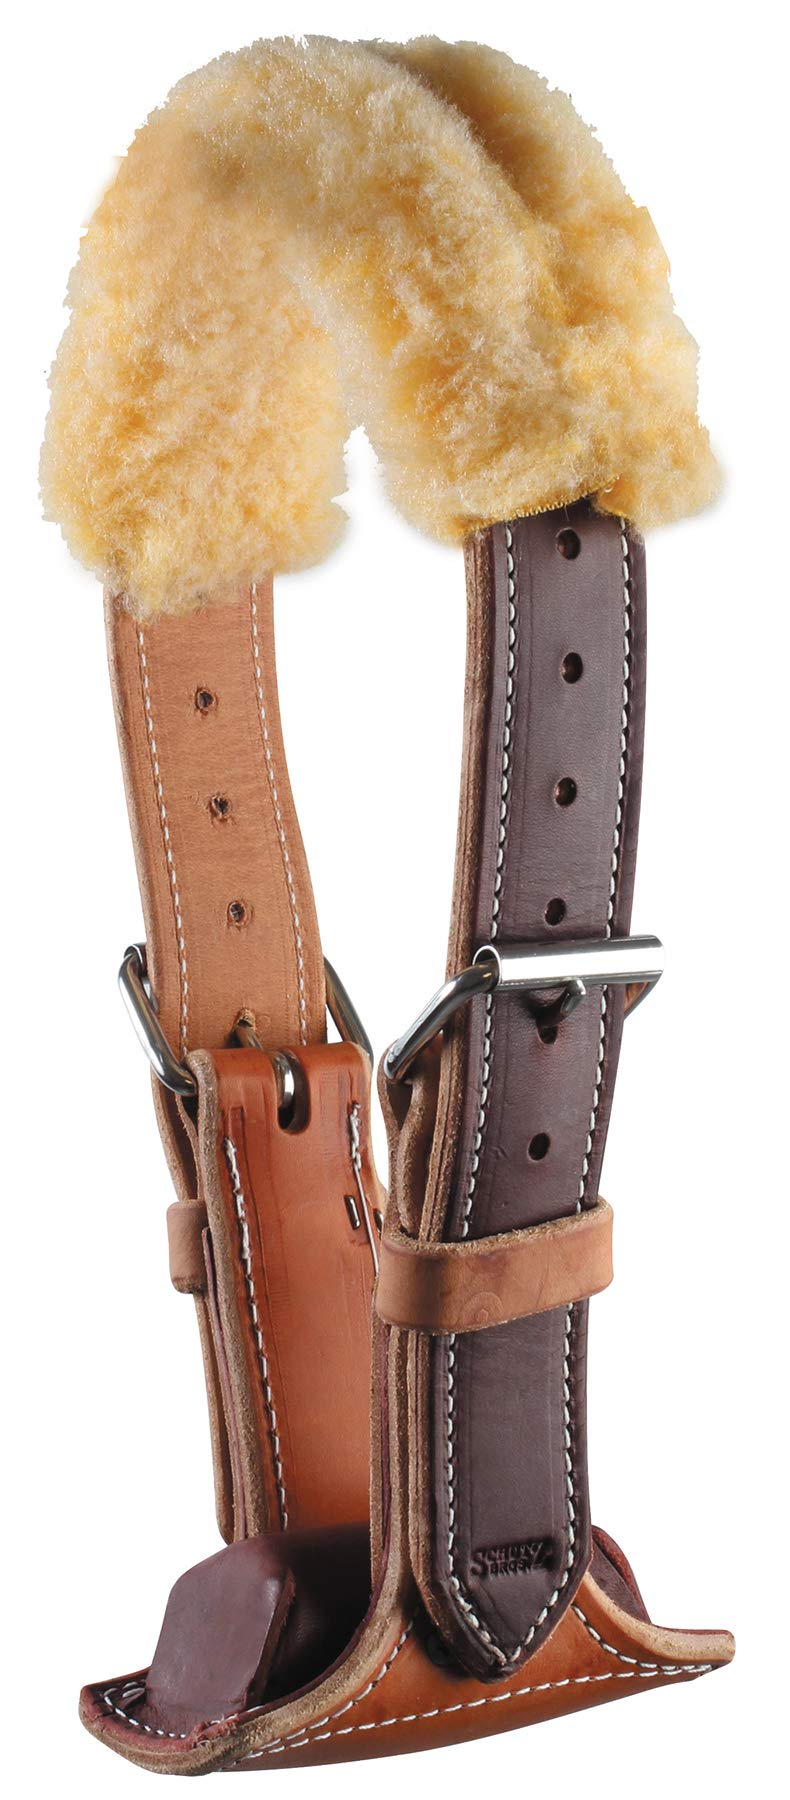 The DARE Cribbing Control Collar by Schutz Brothers